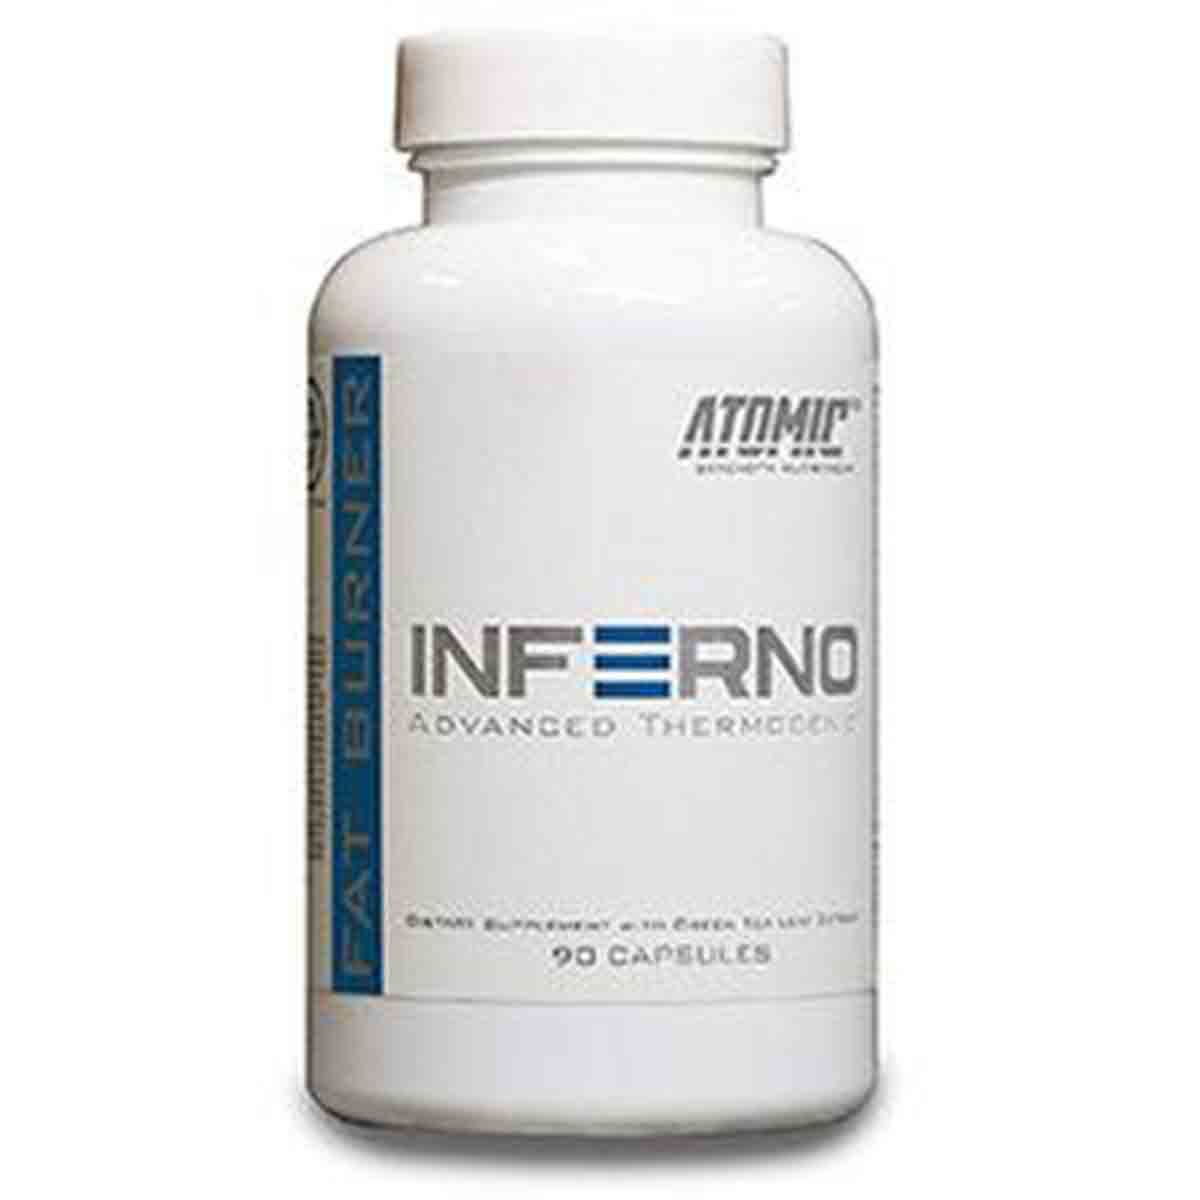 Atomic Strength Nutrition Inferno